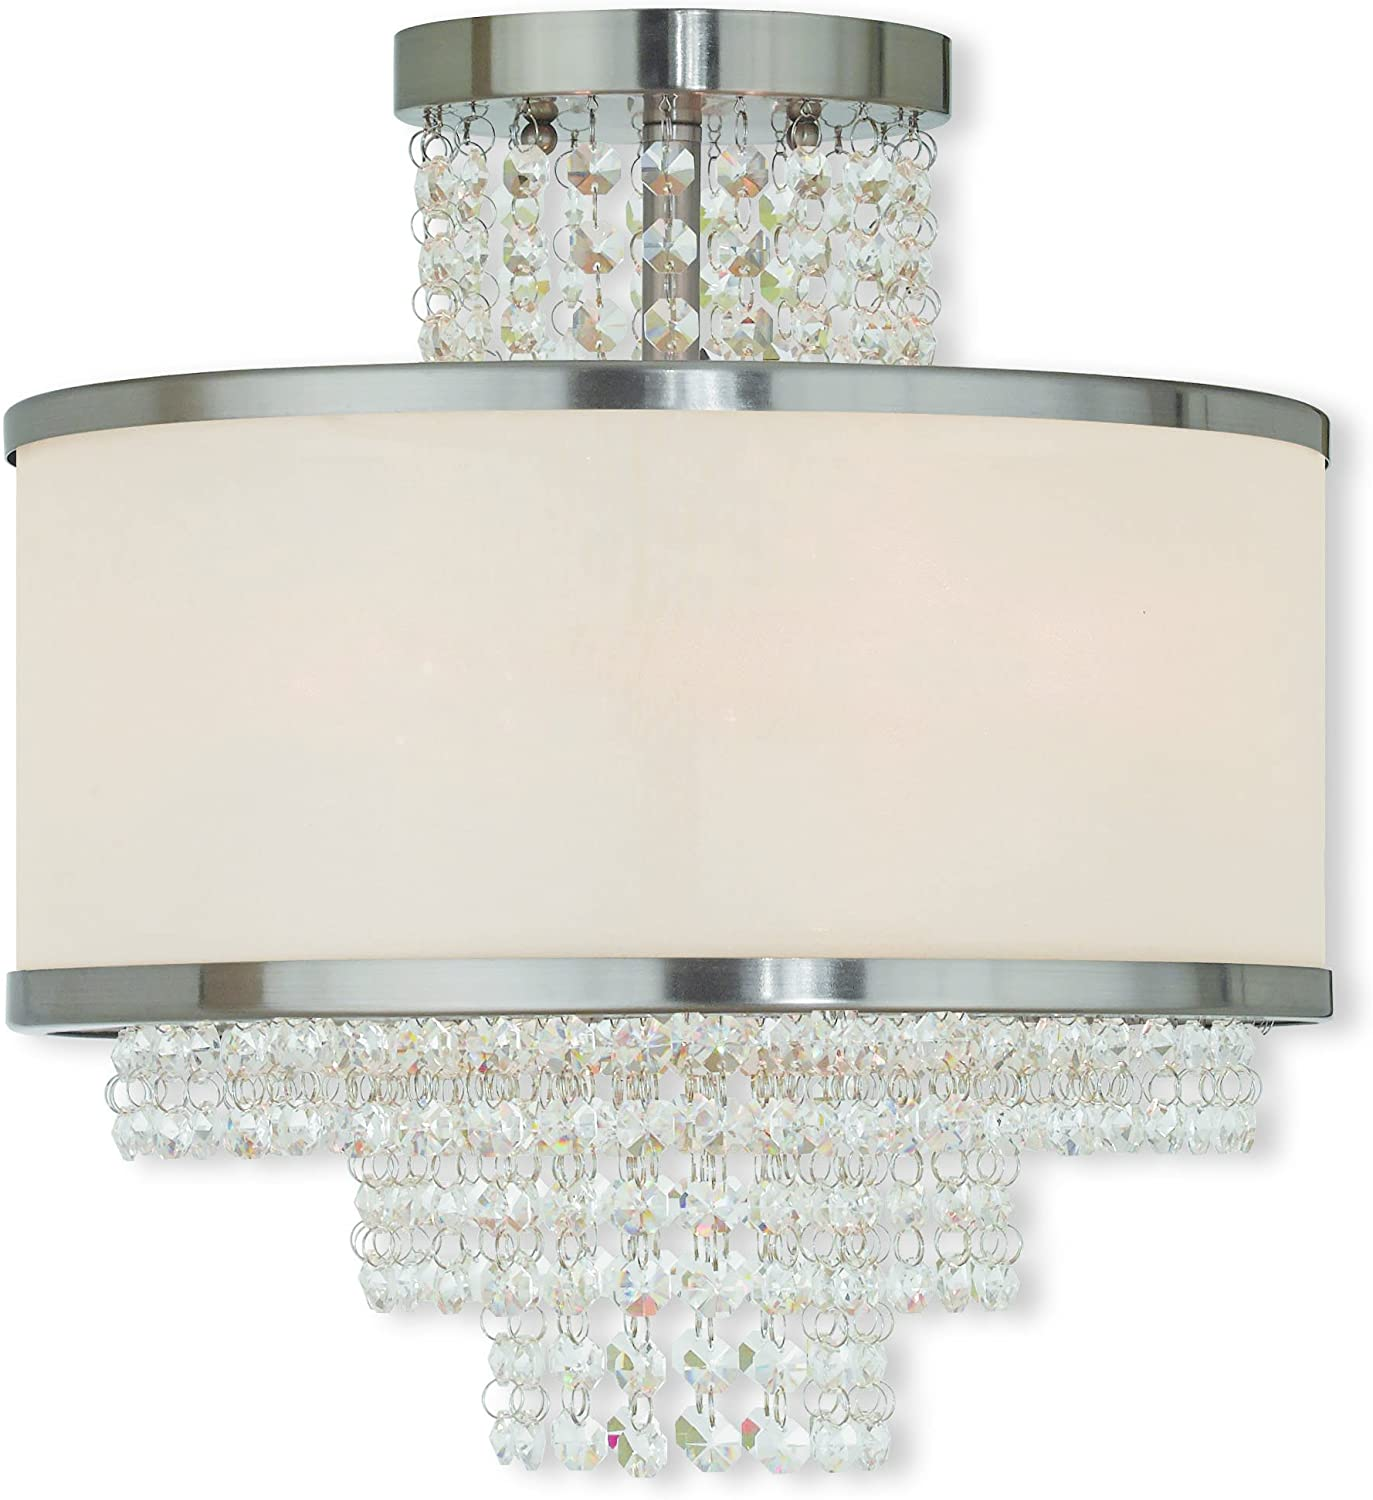 Livex Lighting 50794-91 Crystal Three Light Ceiling Mount from Prescott Collection in Pwt, Nckl, B/S, Slvr. Finish, Brushed Nickel